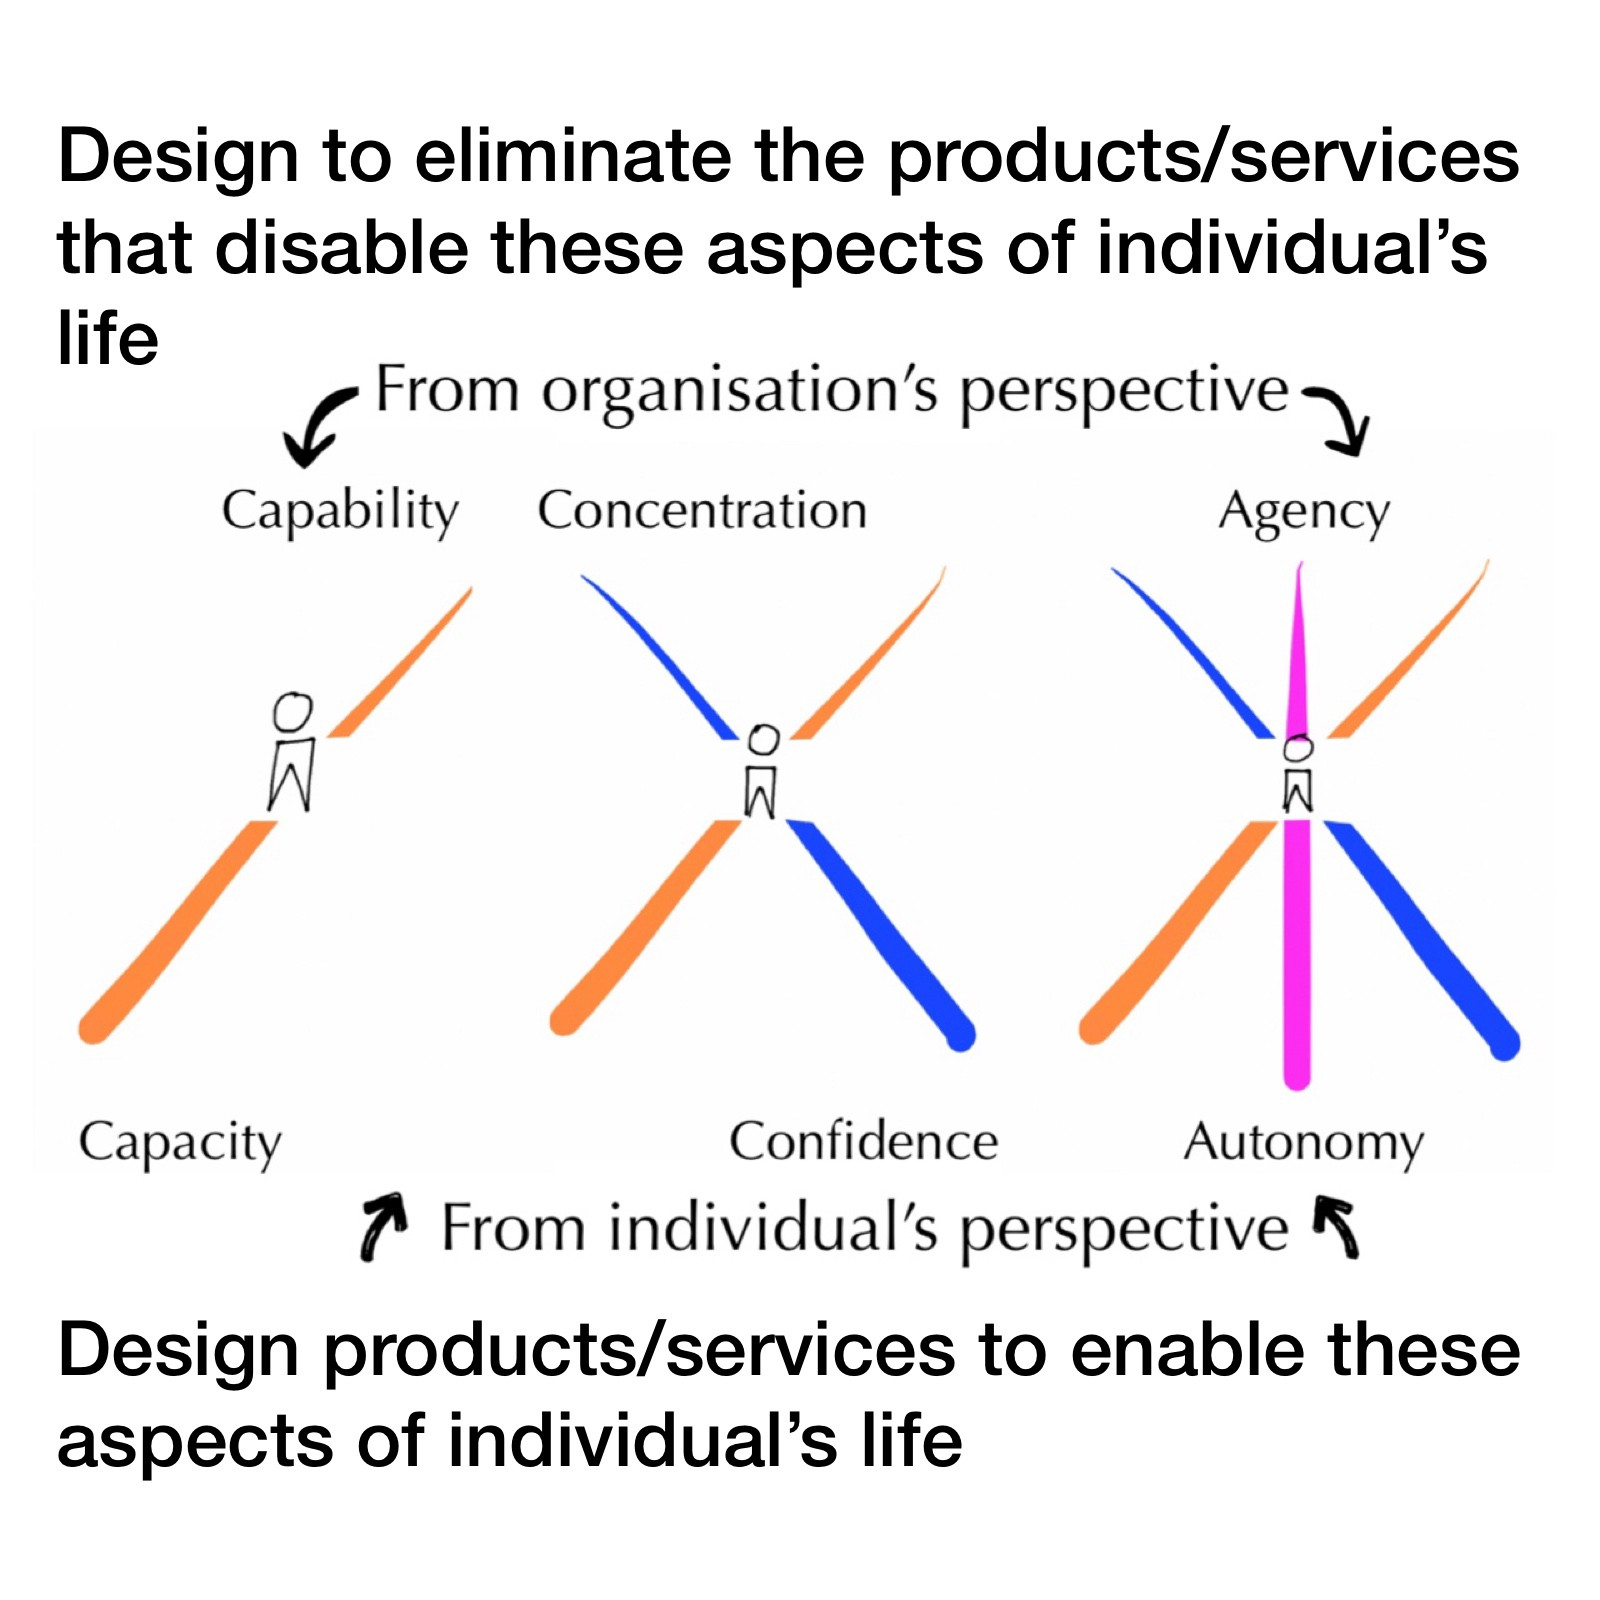 Diagram showing person centred idea of design for capacity/capability, concentration/confidence & agency/autonomy